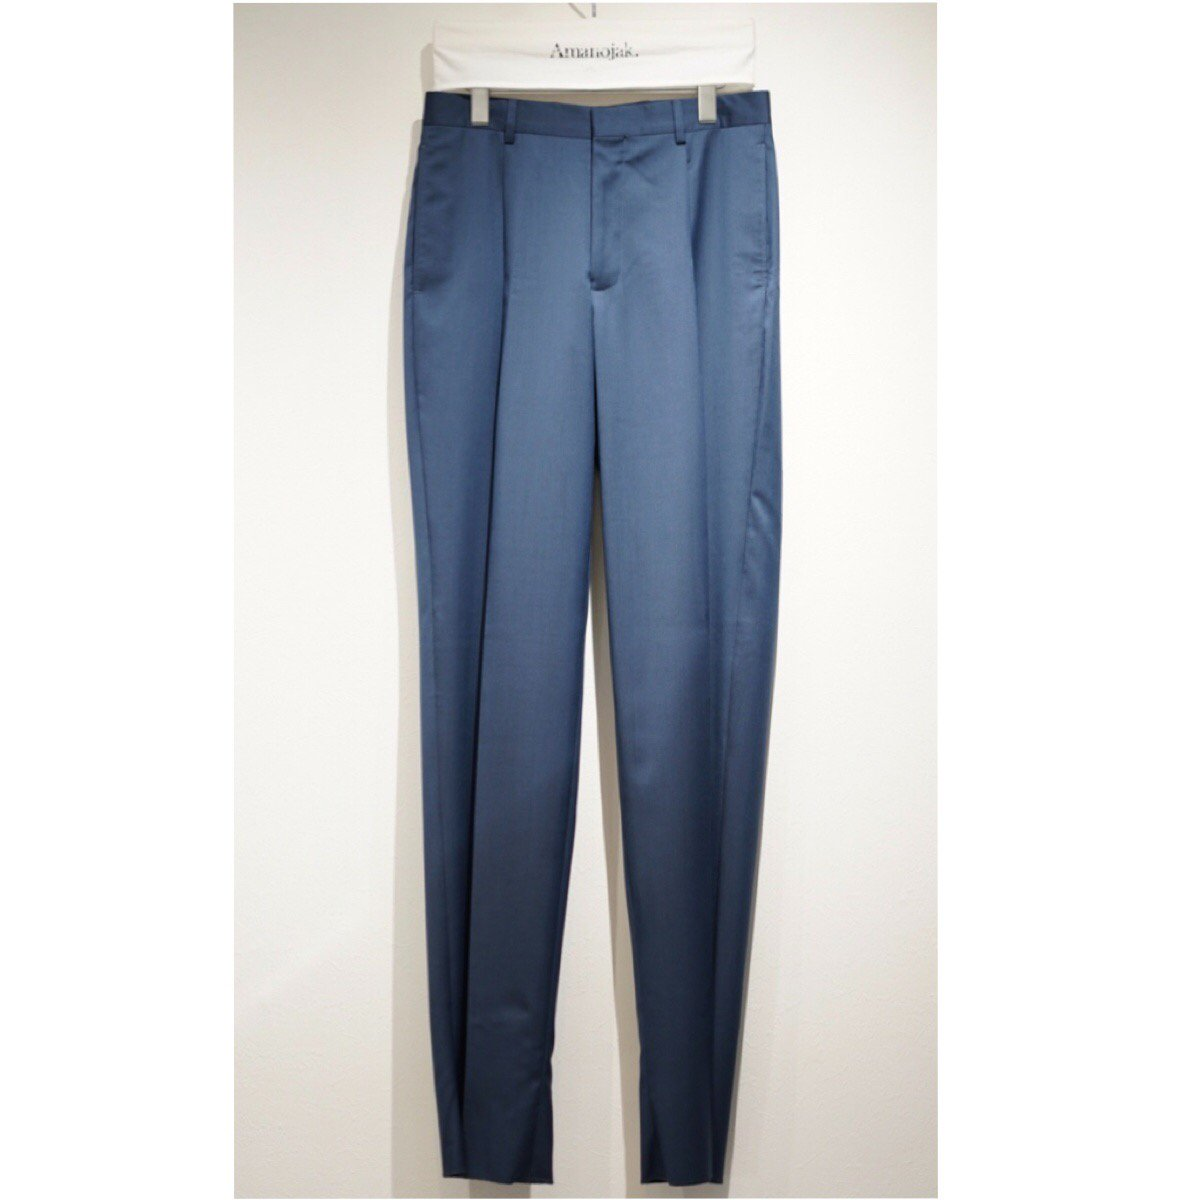 E.TAUZ-PLEATED WOOL TROUSERS PALE INDIGO TWILL